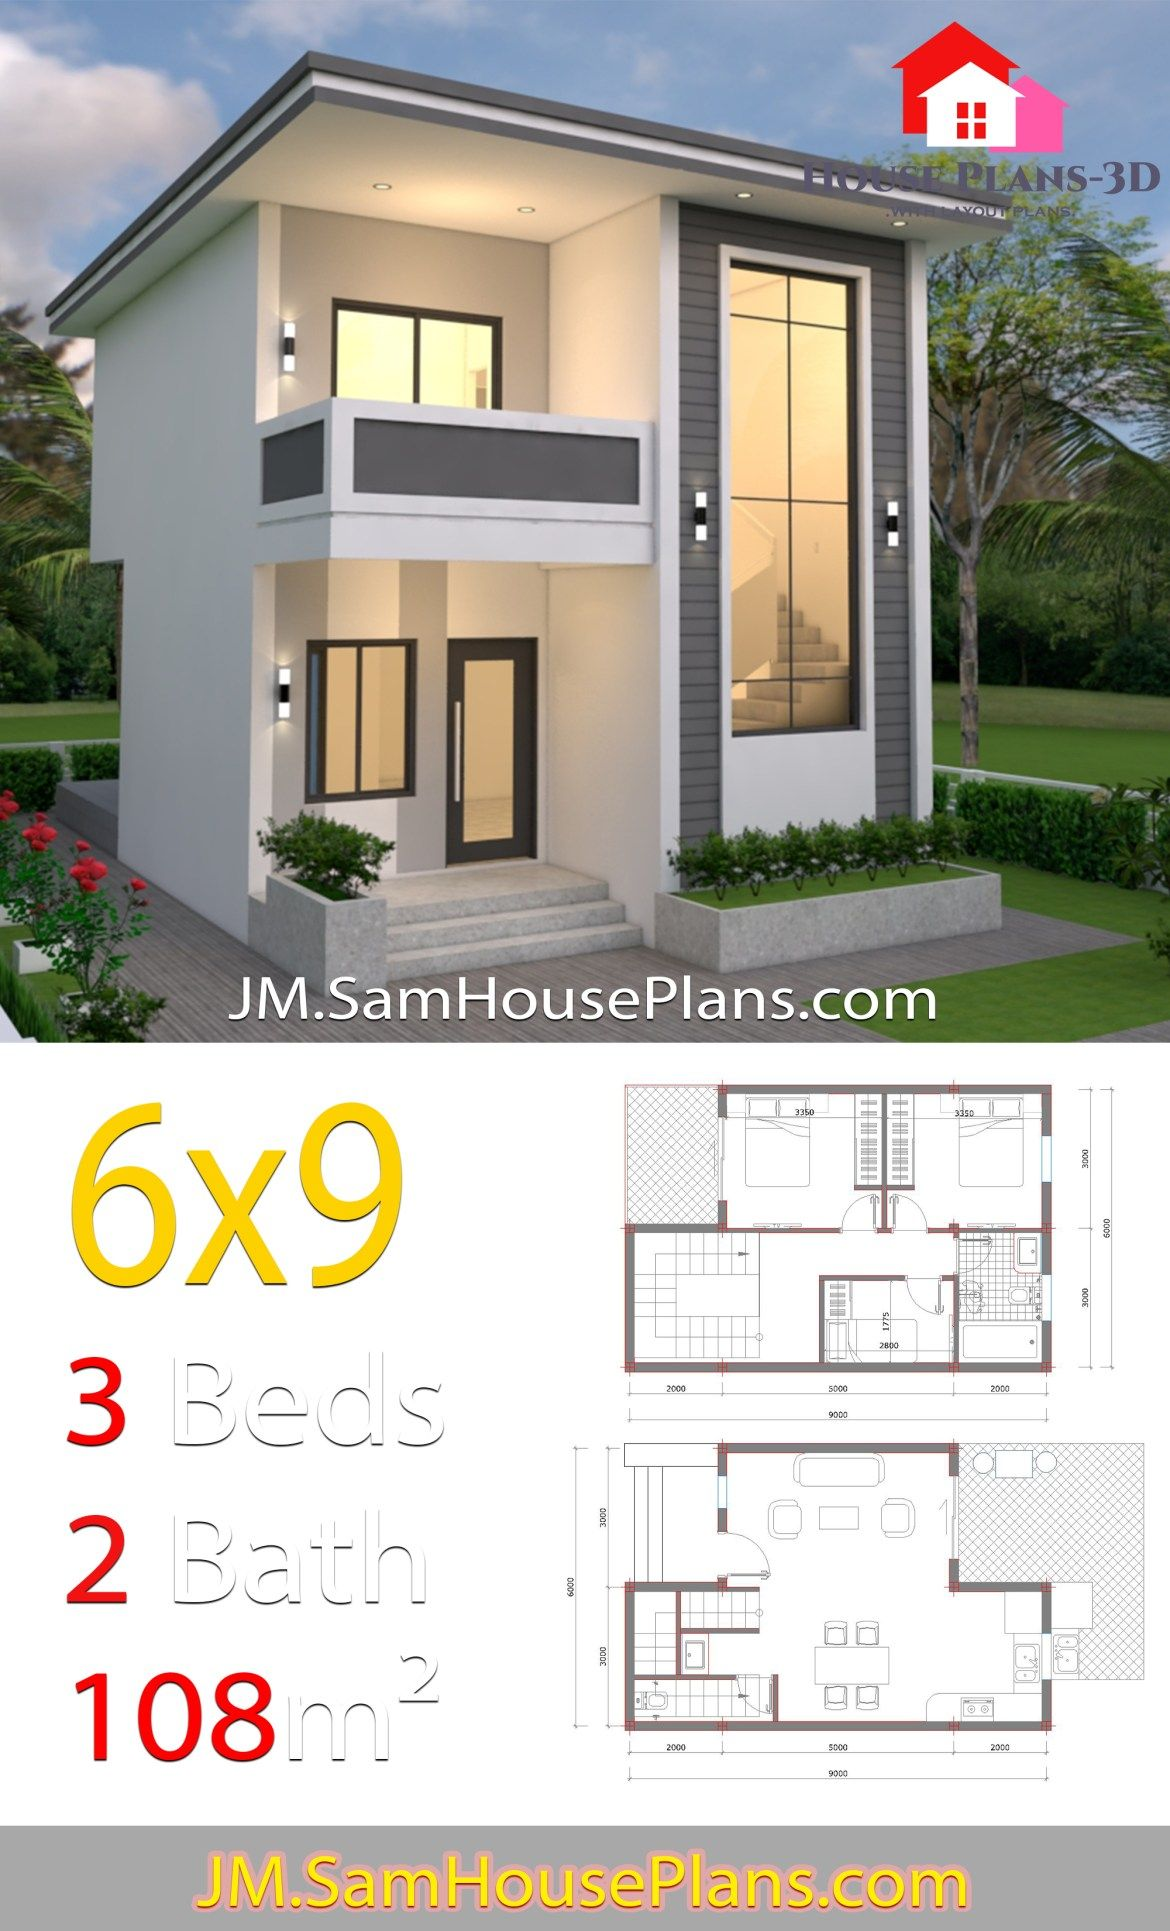 House Design 6x9 With 3 Bedroom Slap Roof House Plans Layout 3d House Plans House Design House Roof